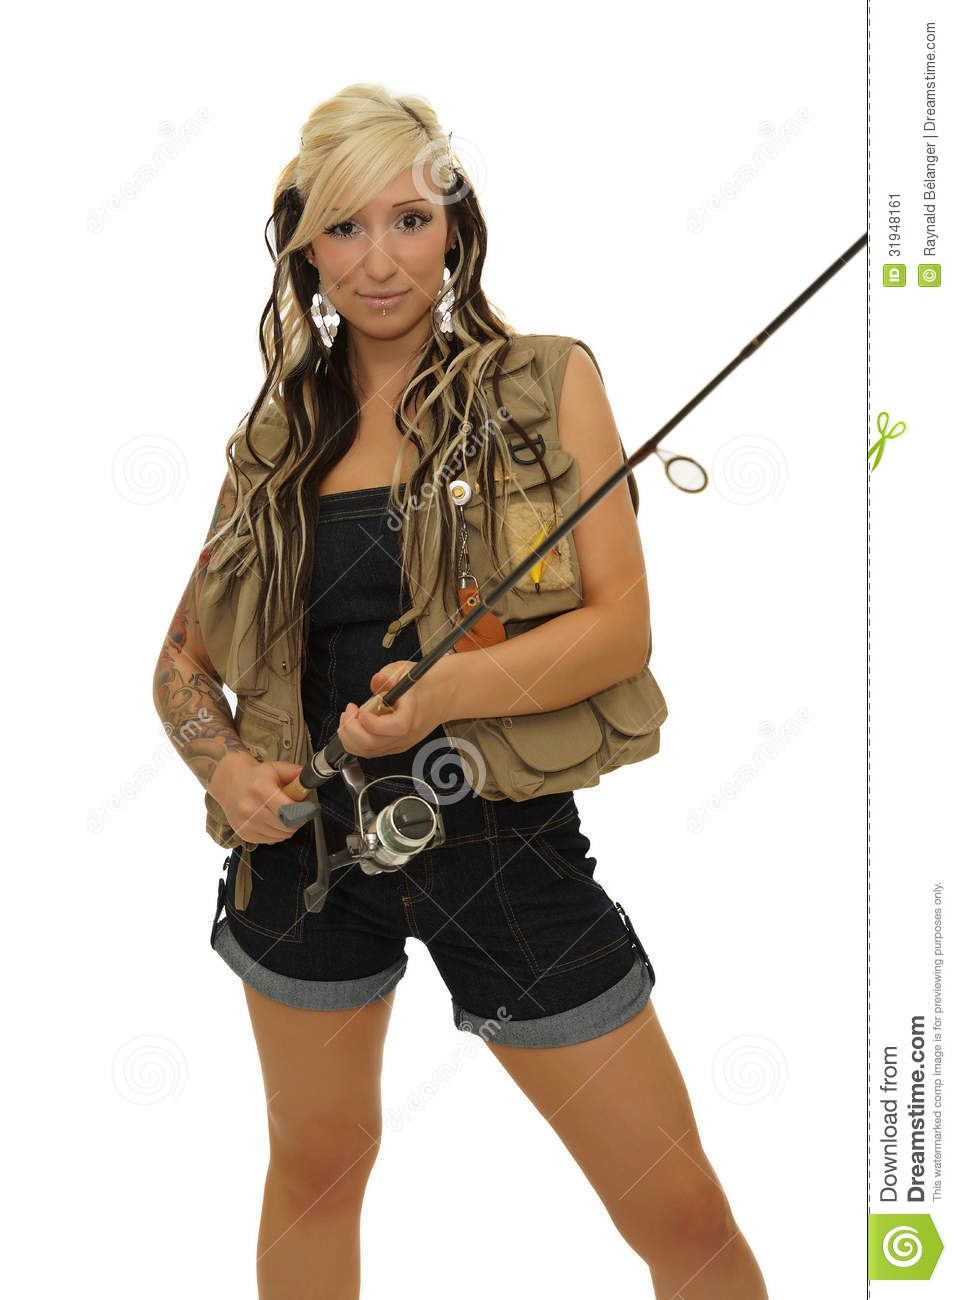 Girl with fishing pole stock image image 31948161 for Girl fishing pole